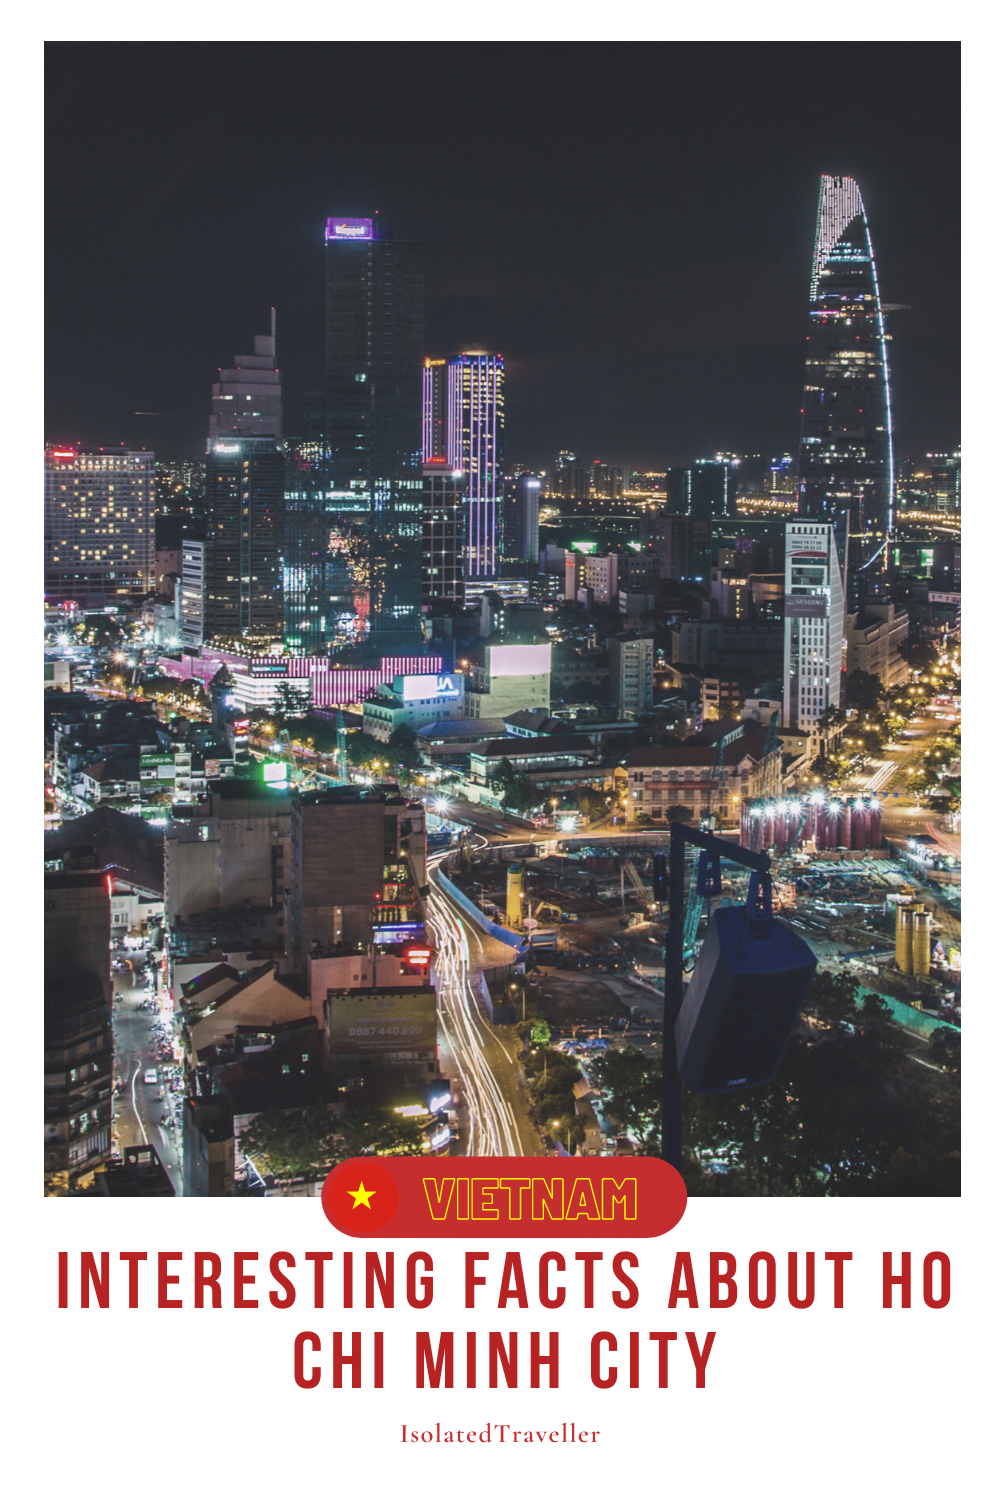 Facts About Ho Chi Minh City